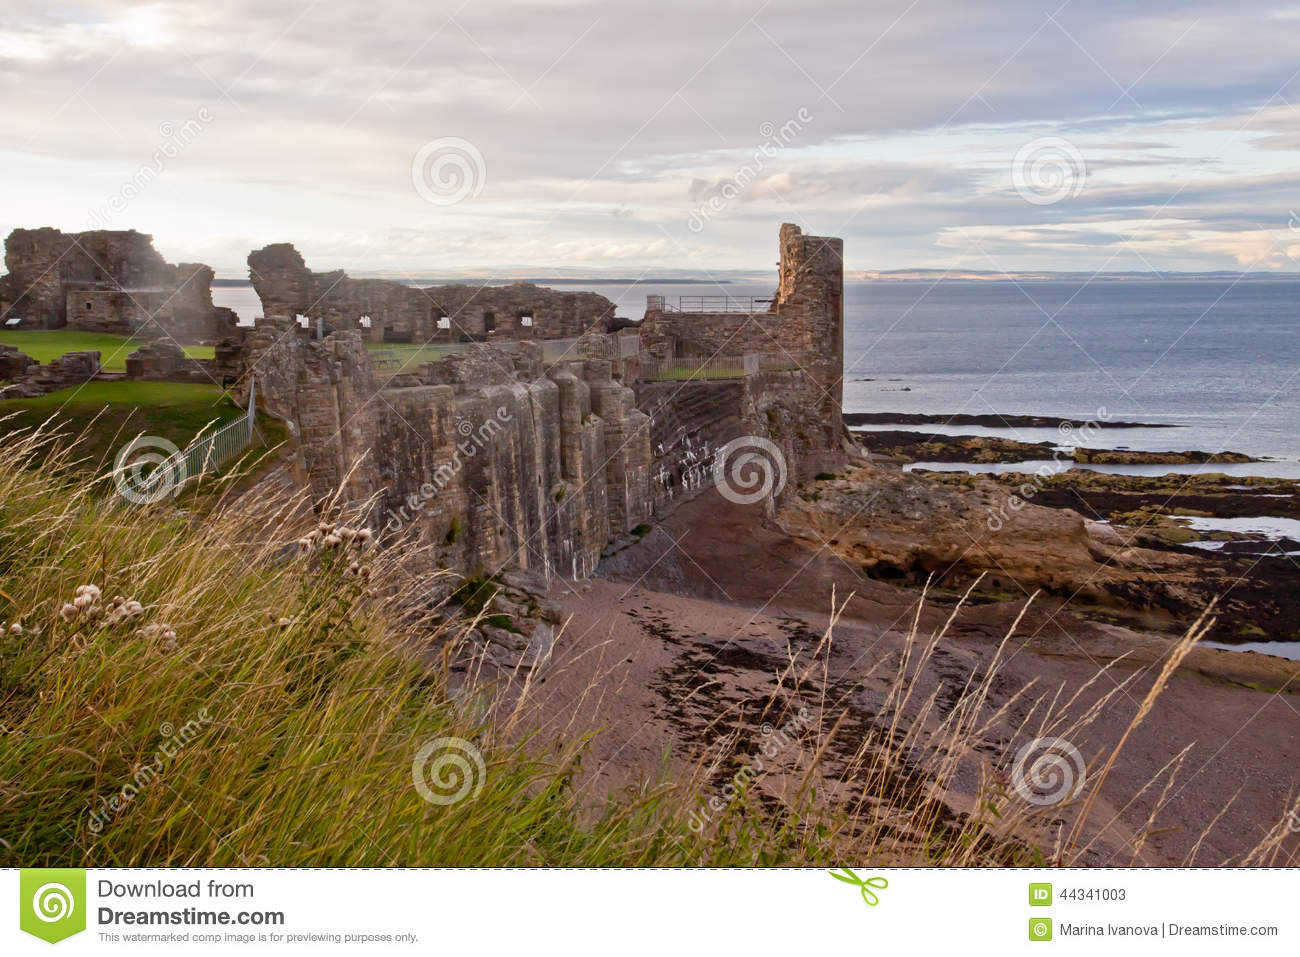 A view of the coast and St Andrews castle, Scotland